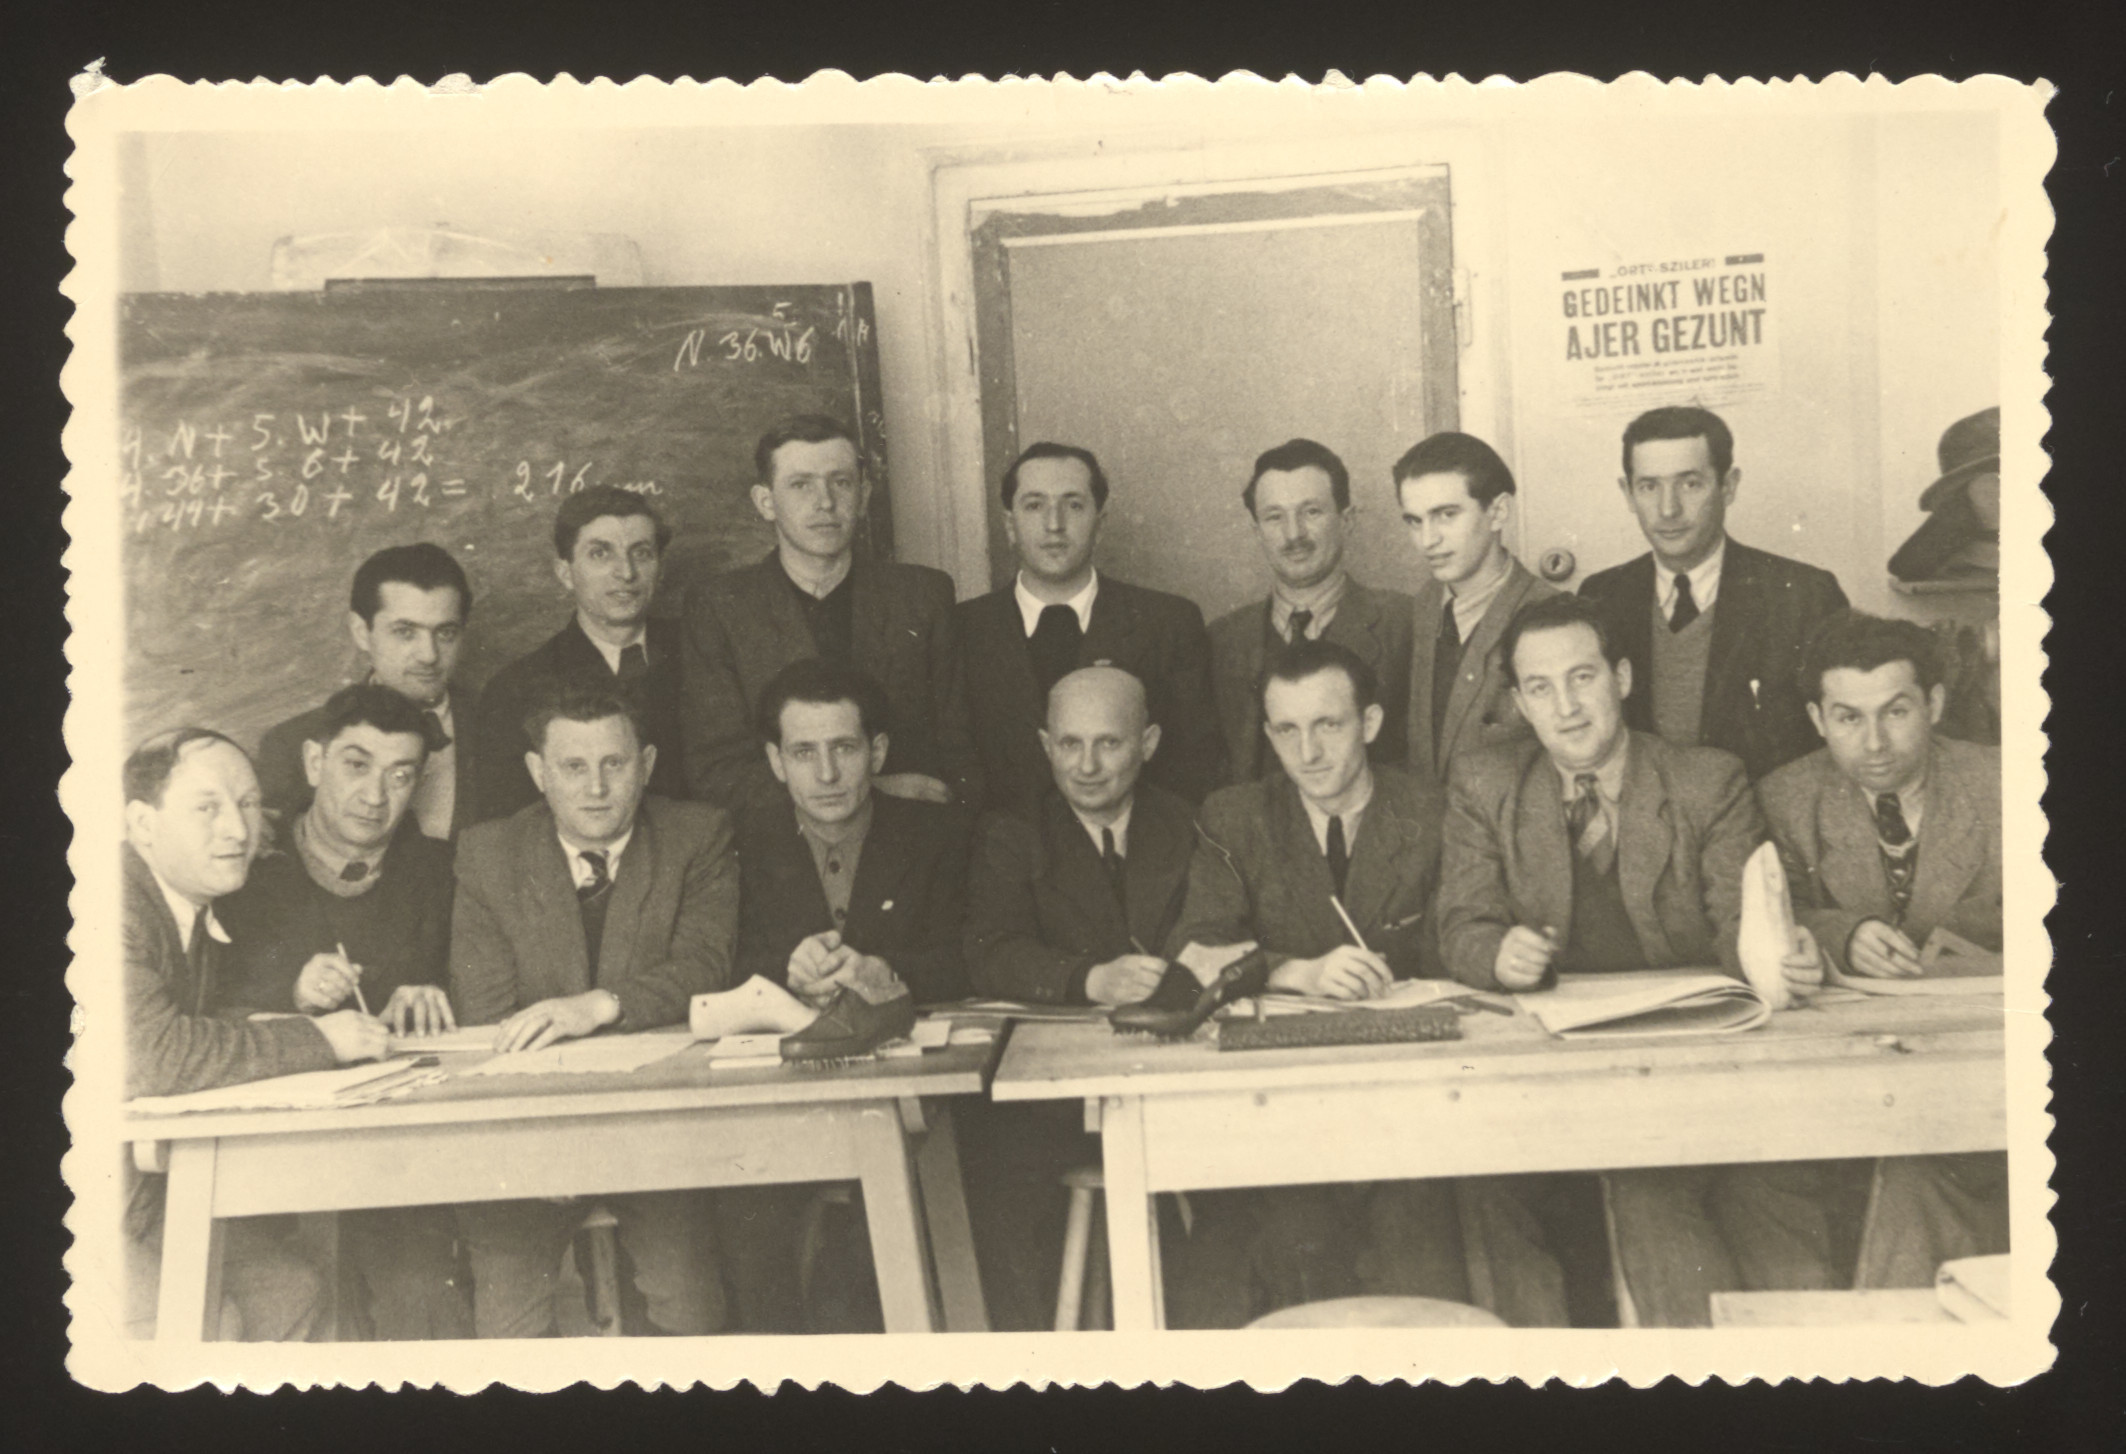 Jewish displaced persons pose for a group portrait in the classroom of an ORT vocational school in Munich.  Simon Spielman is standing in the second row on the left.